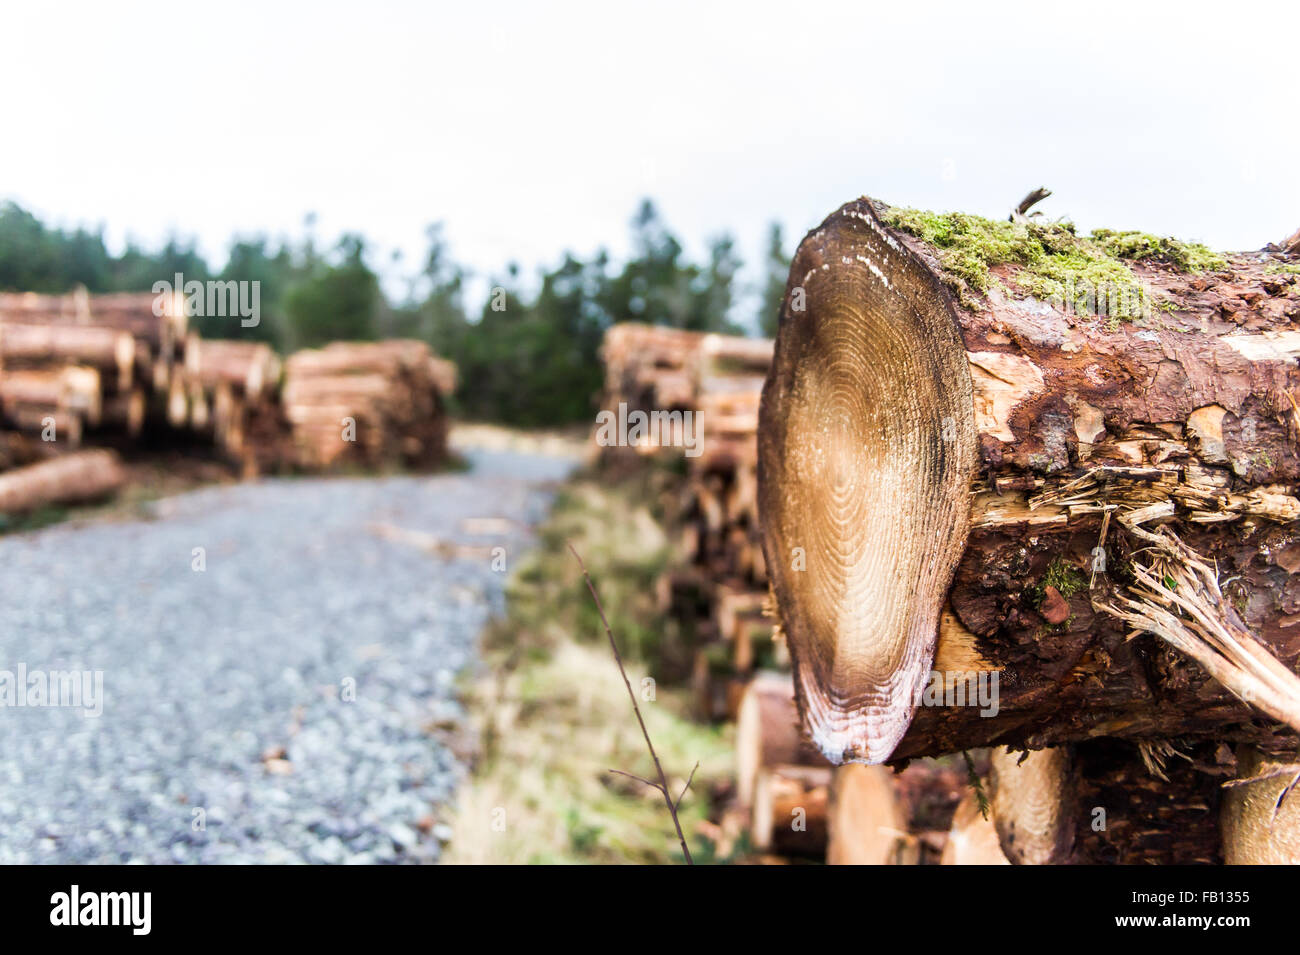 Felled tree from the felling operation in Scrahanaleary Forest, Ballydehob, West Cork, Ireland with copy space. - Stock Image